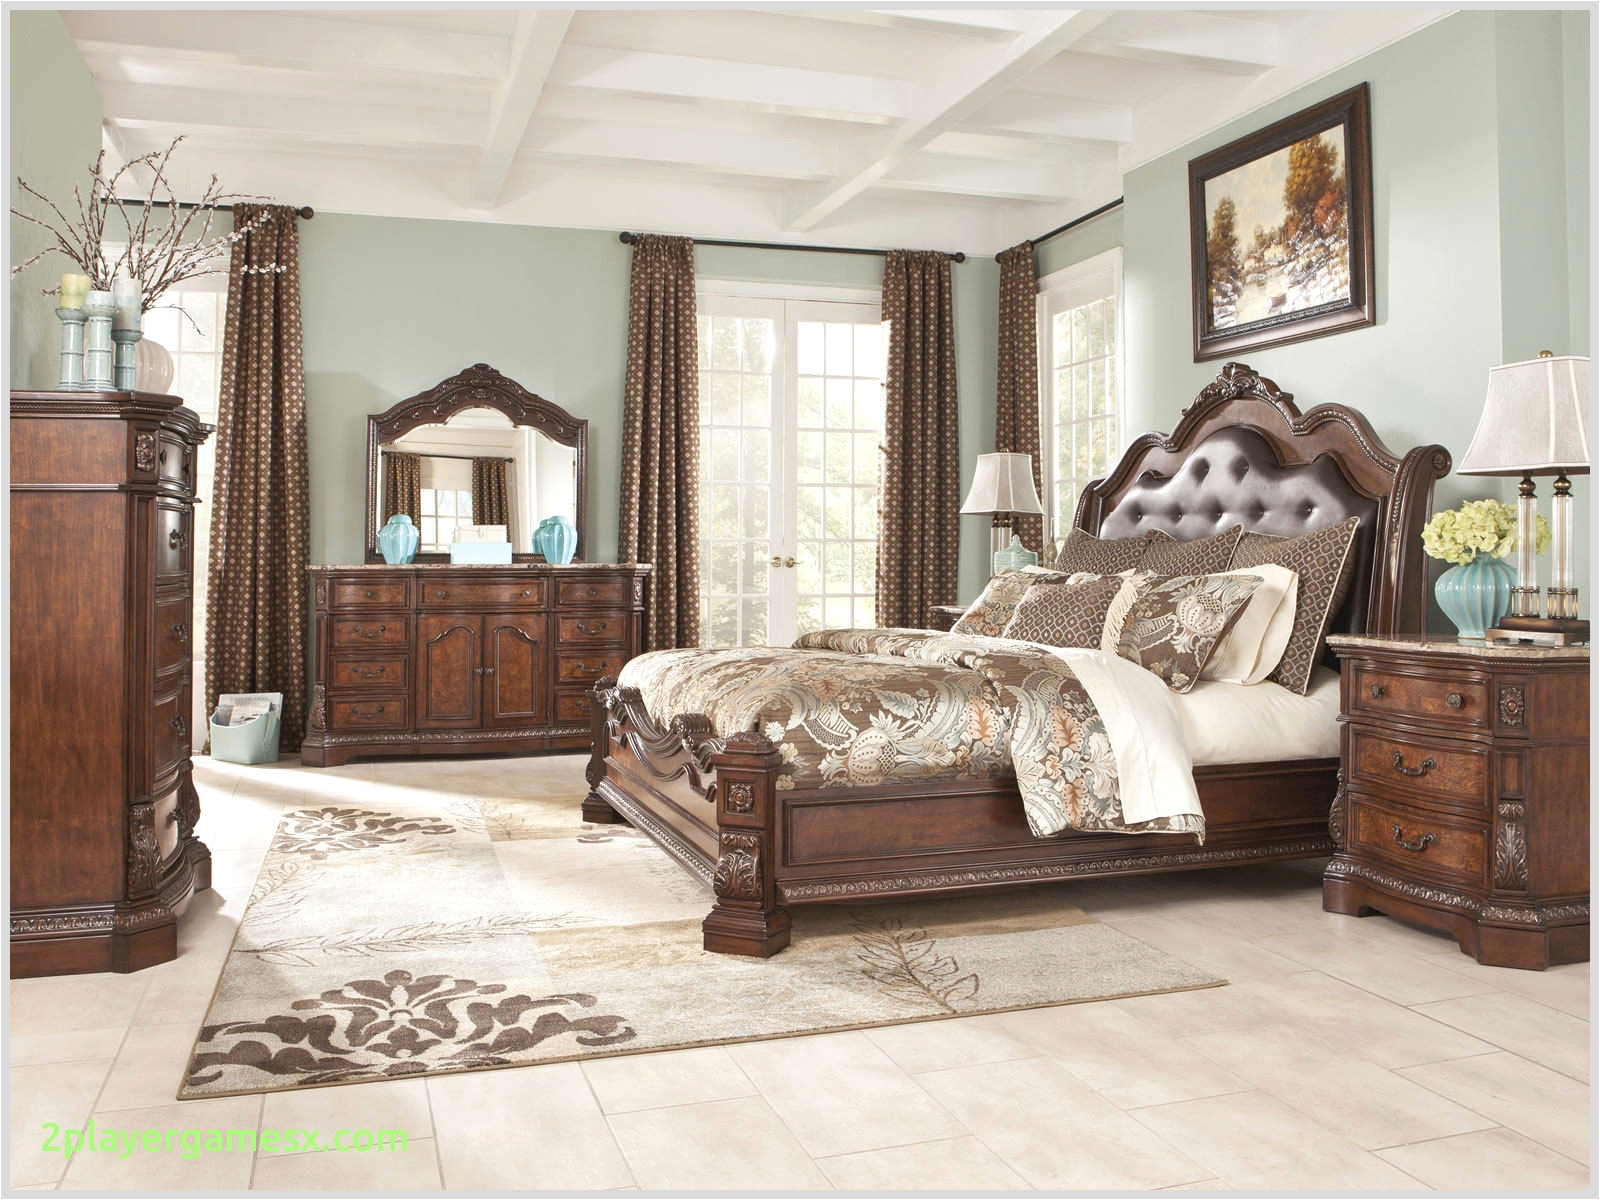 raymond and flanigan sofa bed chloe velvet tufted only at macy s raymour outlet bedroom sets 50 unique images photos home